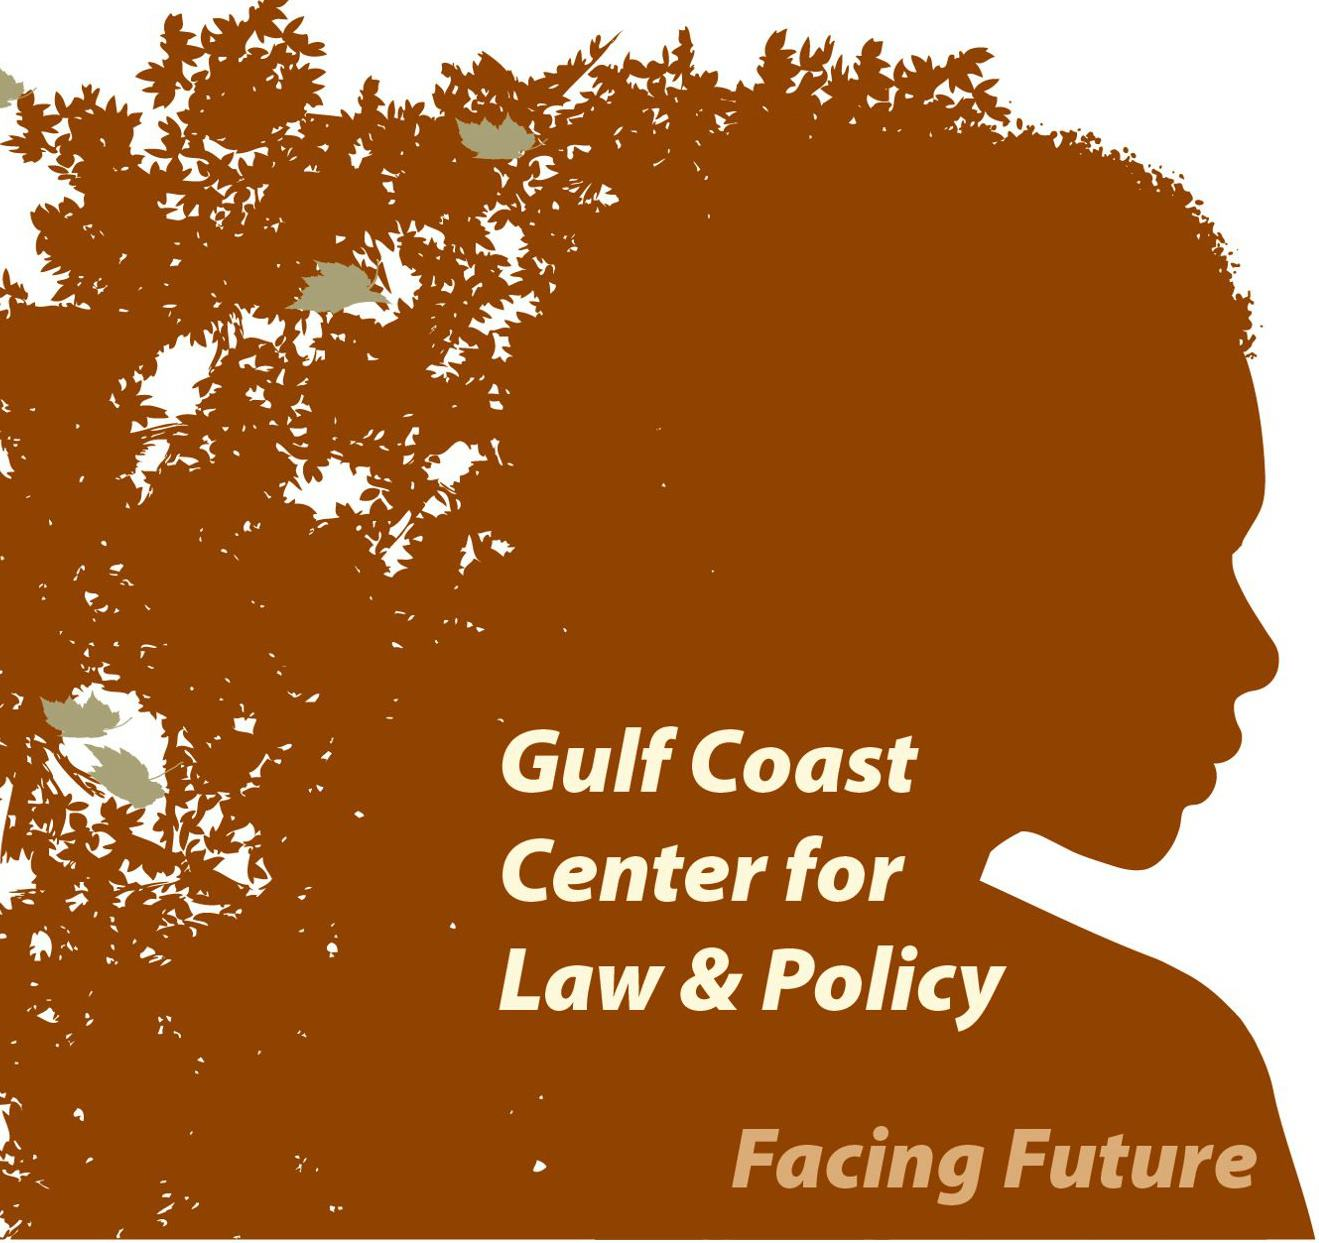 Gulf Coast Center for Law and Policy